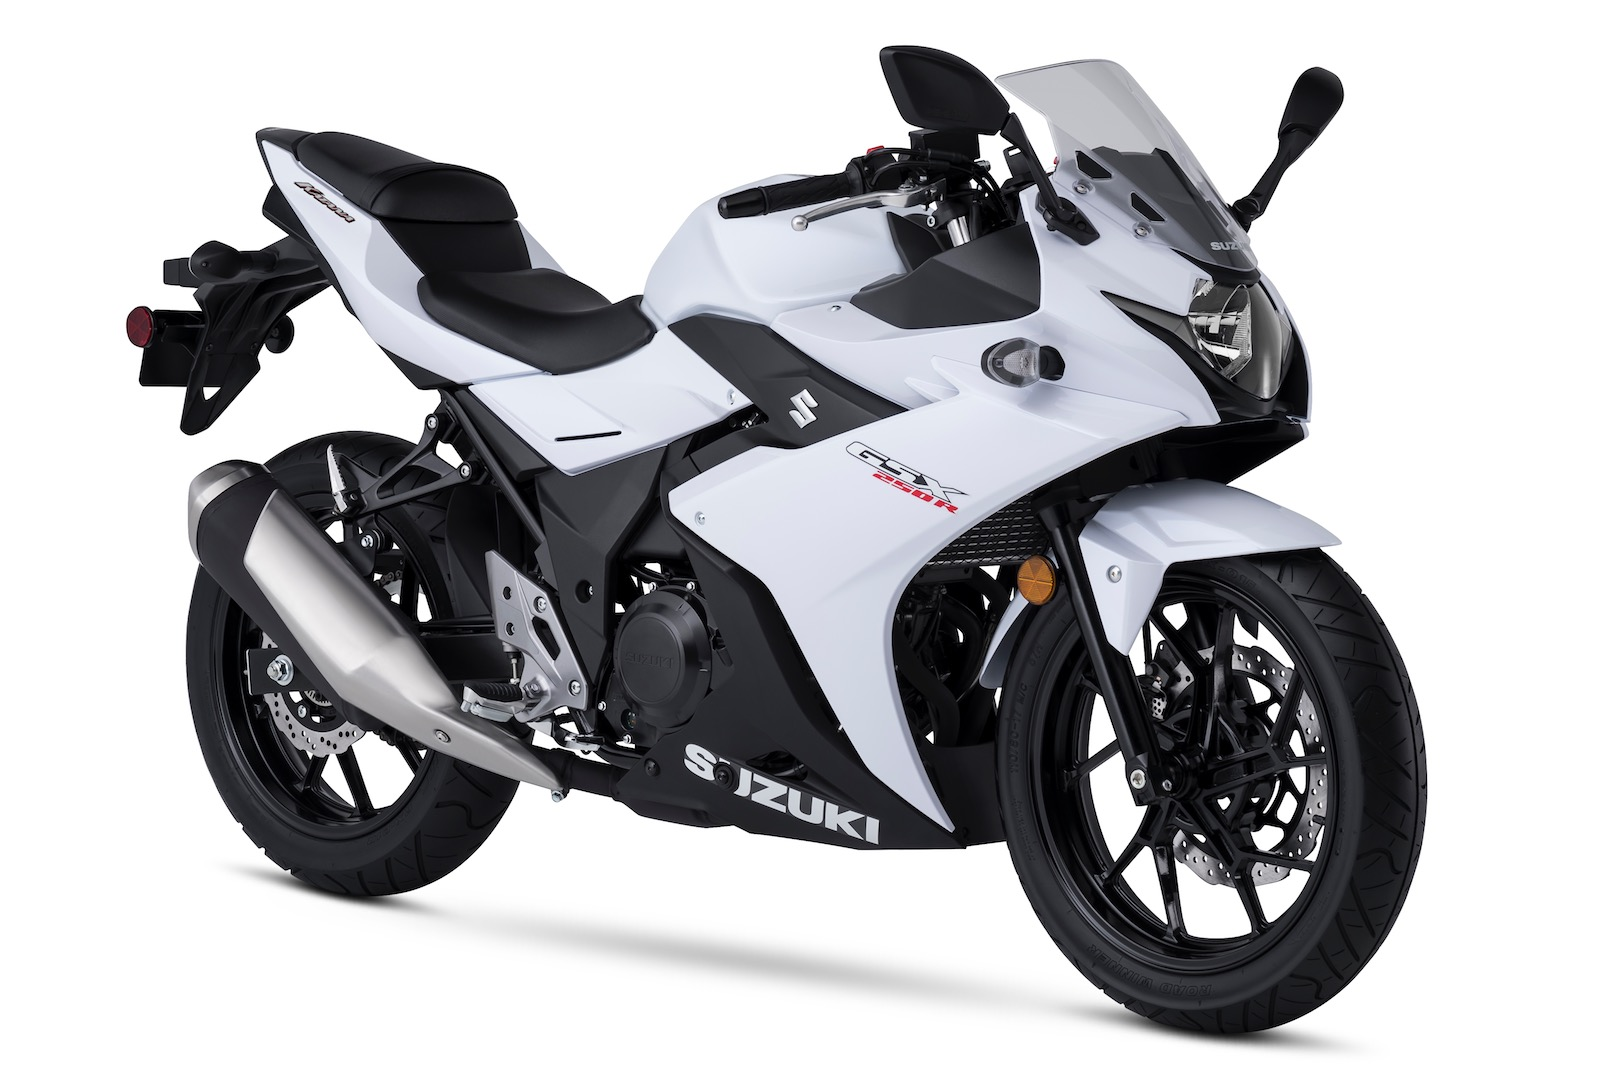 2018 suzuki tu250x. wonderful tu250x 2018 suzuki gsx250r katana first look  right angle white intended suzuki tu250x